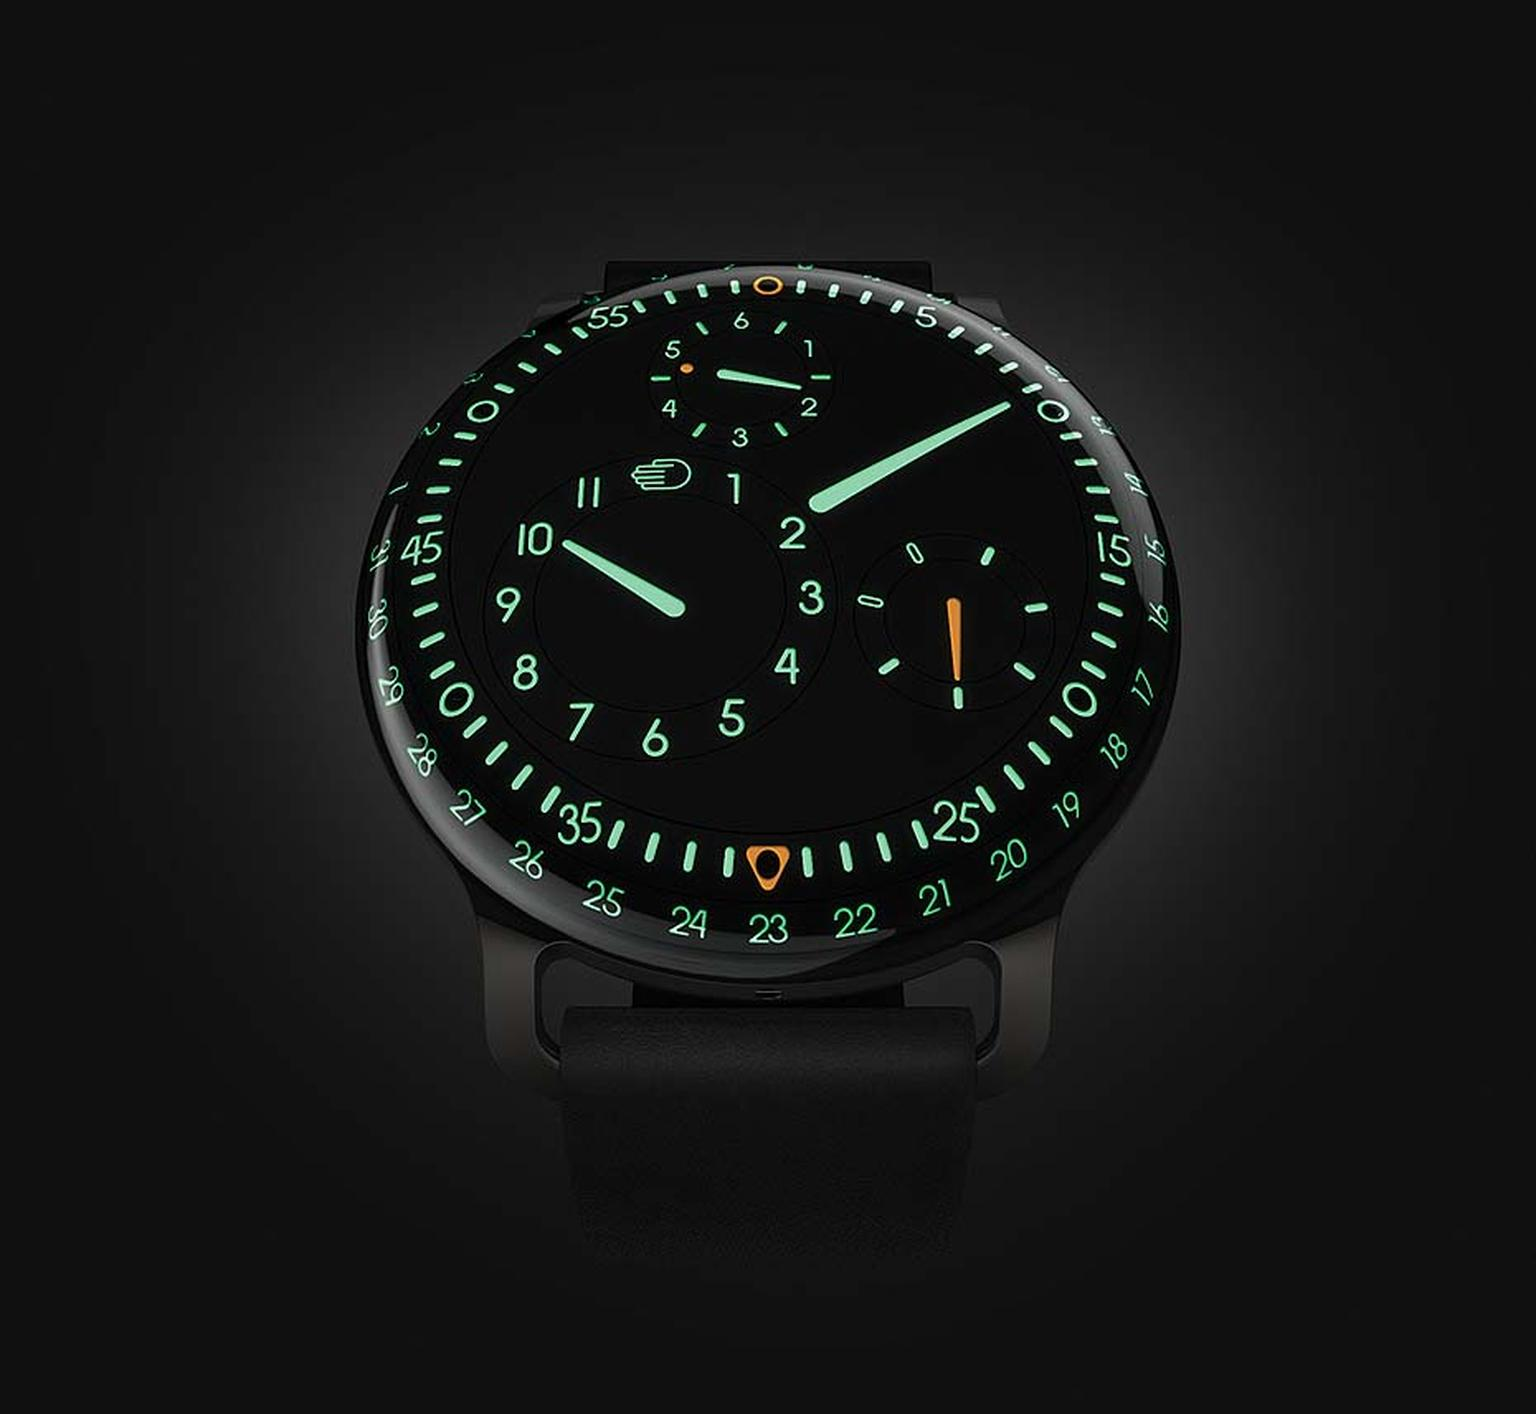 The new Ressence Type 3 watch lights up like the cockpit of an airplane at night with green and orange luminescence.